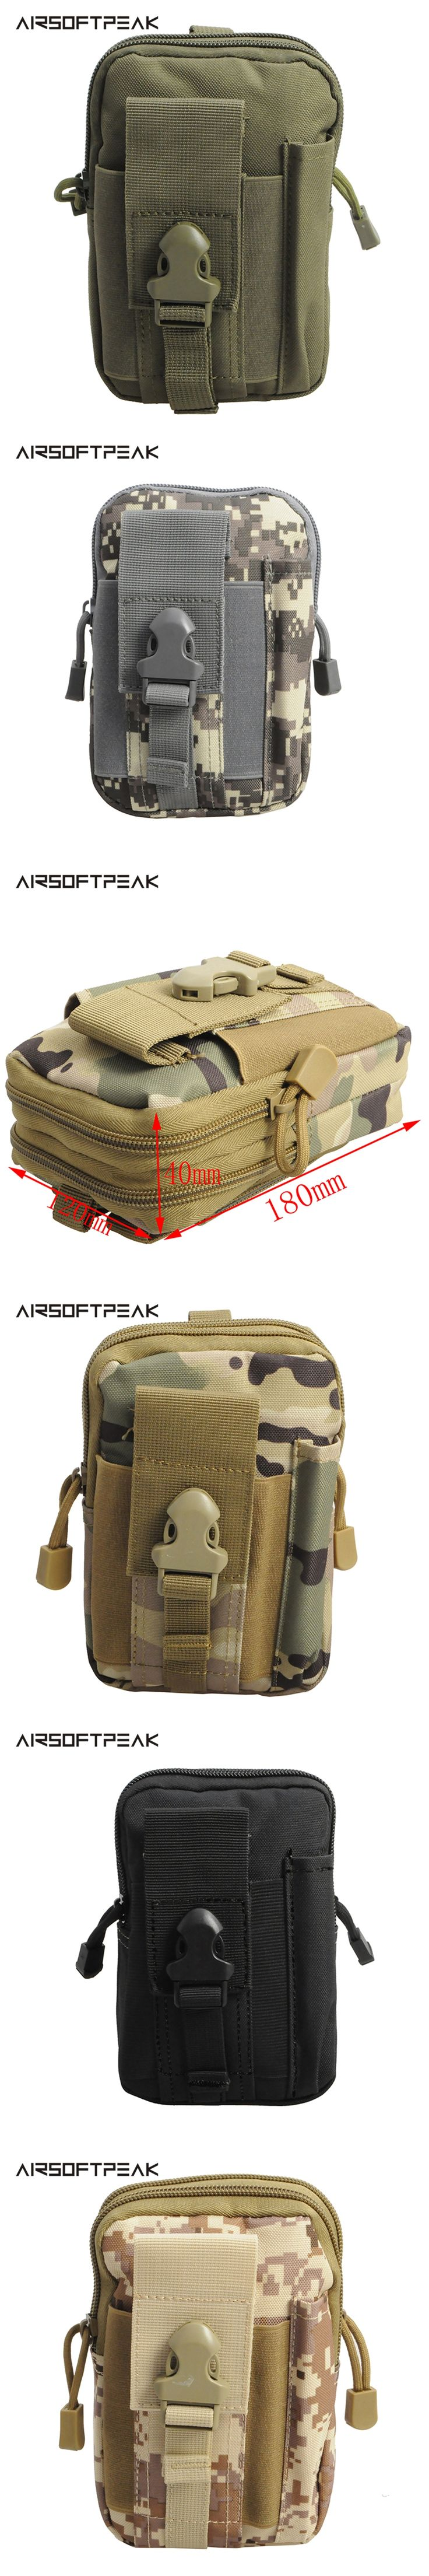 AIRSOFTPEAK Outdoor Military Molle Waist Bag Tactical Holster Universal Hunting Pouch Belt Phone Case Pocket For iPhone 8